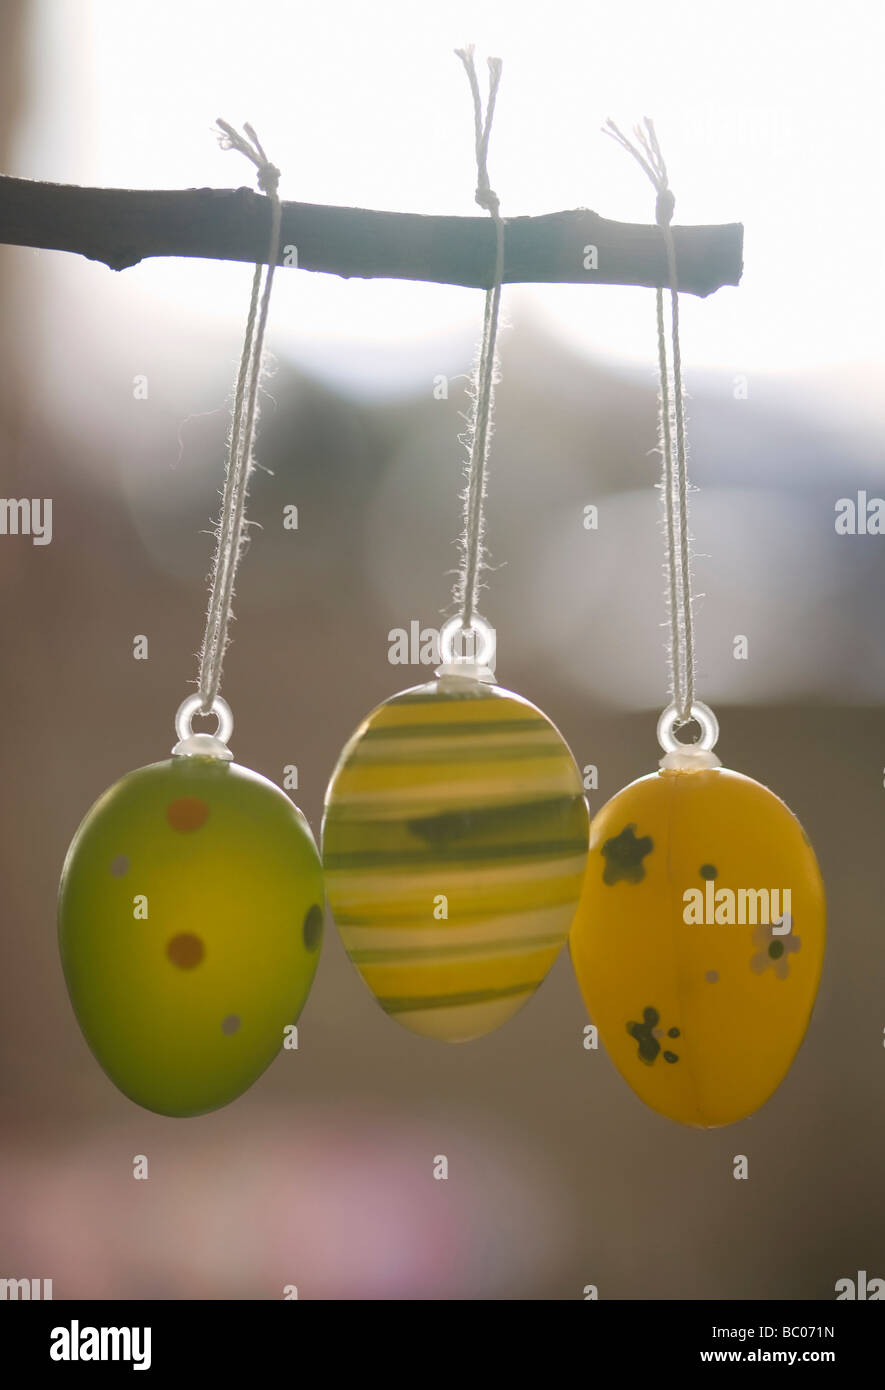 Three painted Easter eggs hanging from a twig - Stock Image